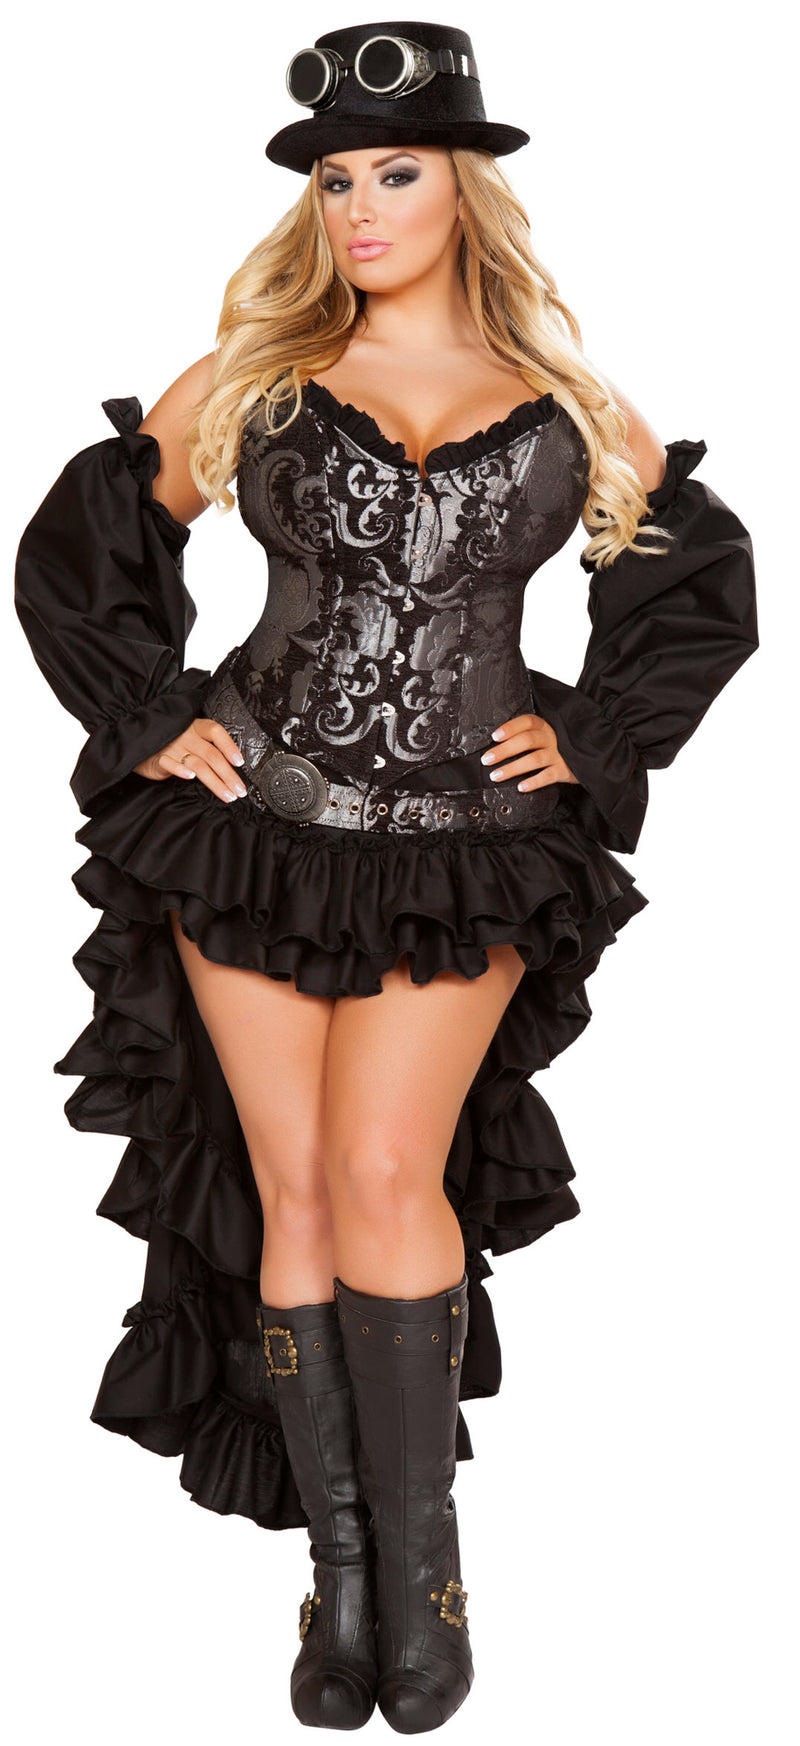 RM-4647 Black steampunk plus front